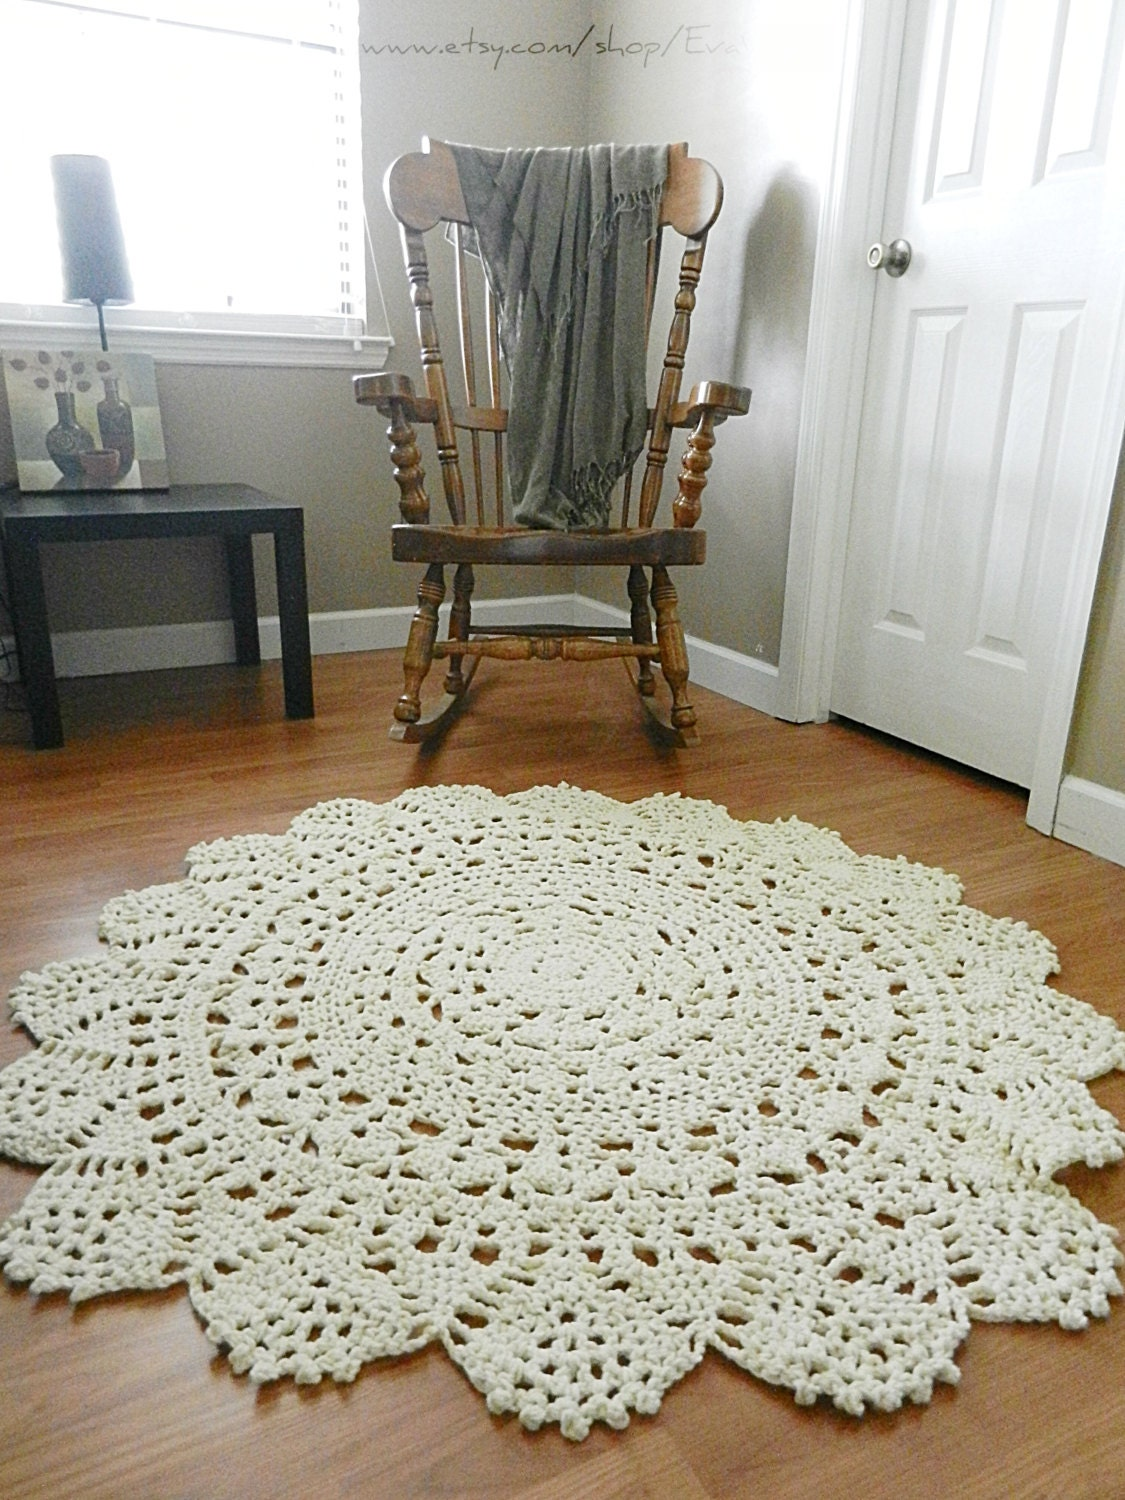 Giant crochet doily rug floor light beige ecru nude by for Tappeti country chic